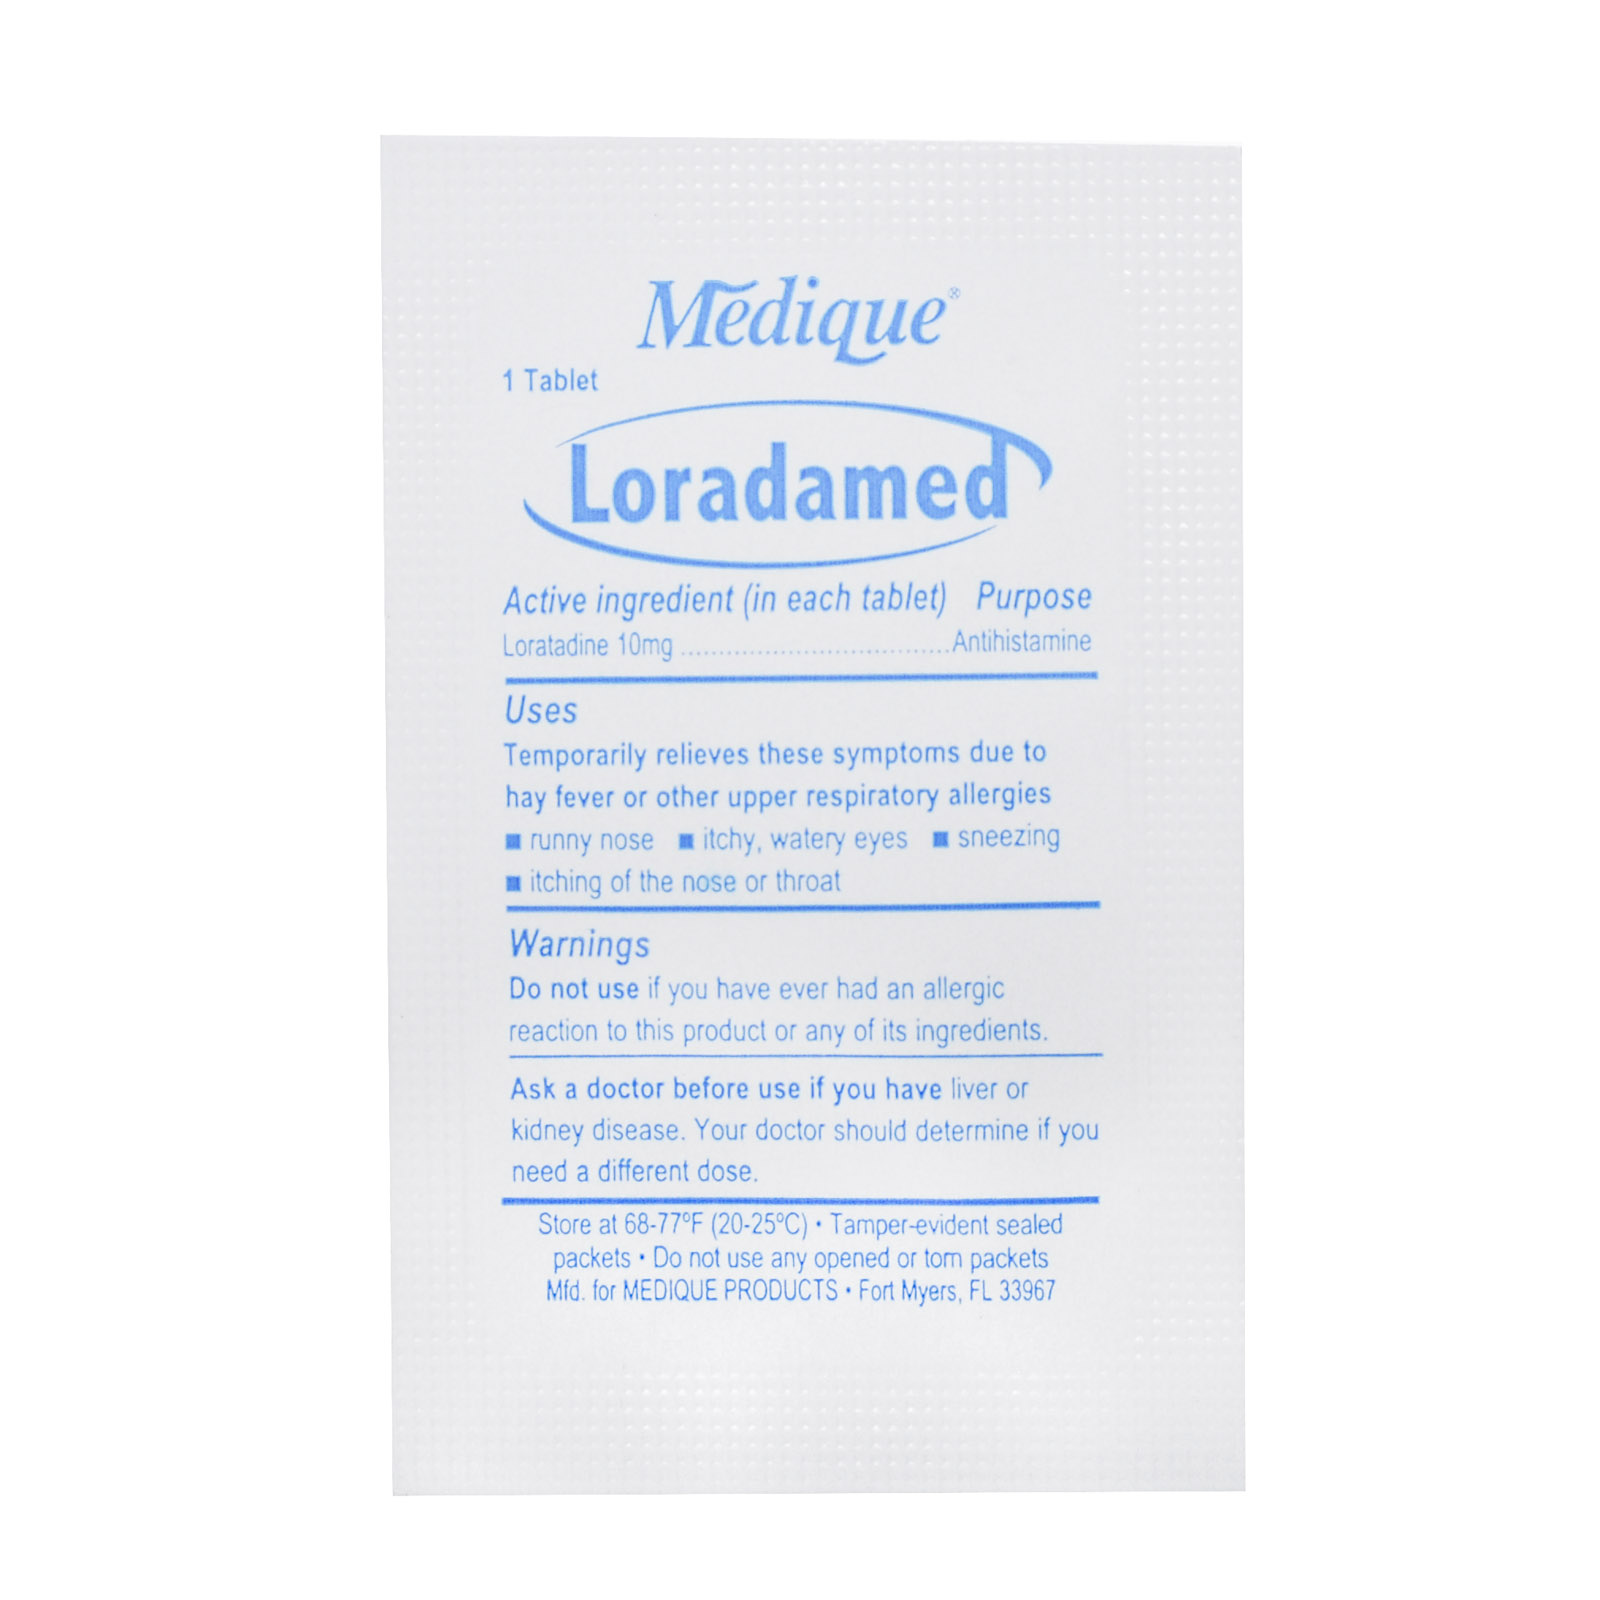 Medique Loradamed Allergy Packets   MFASCO Health & Safety